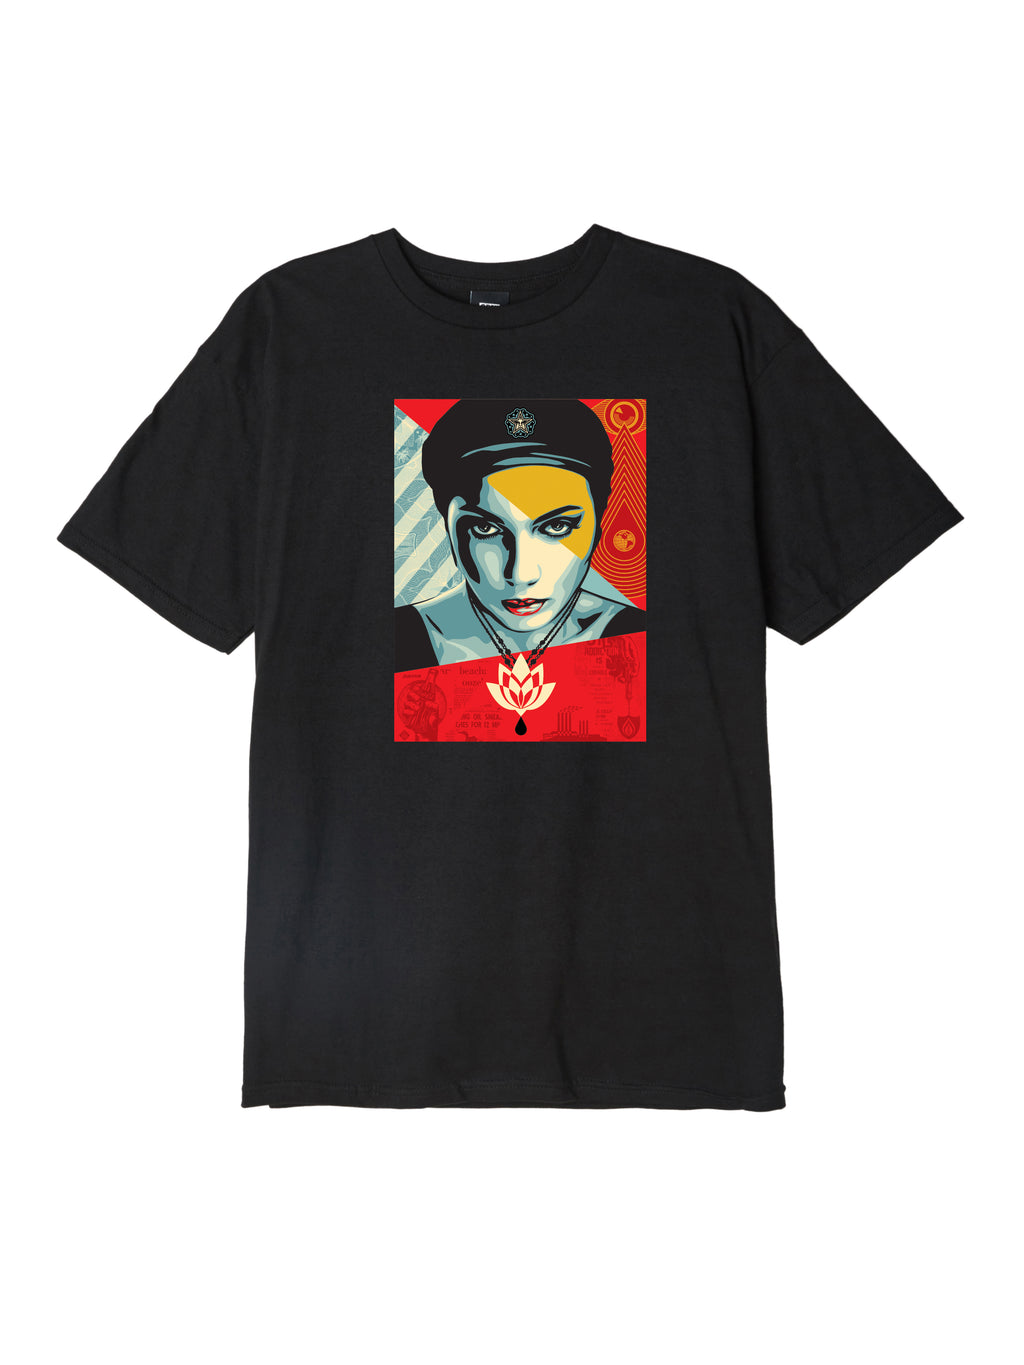 OBEY - Oil Lotus Woman Men's Tee, Black